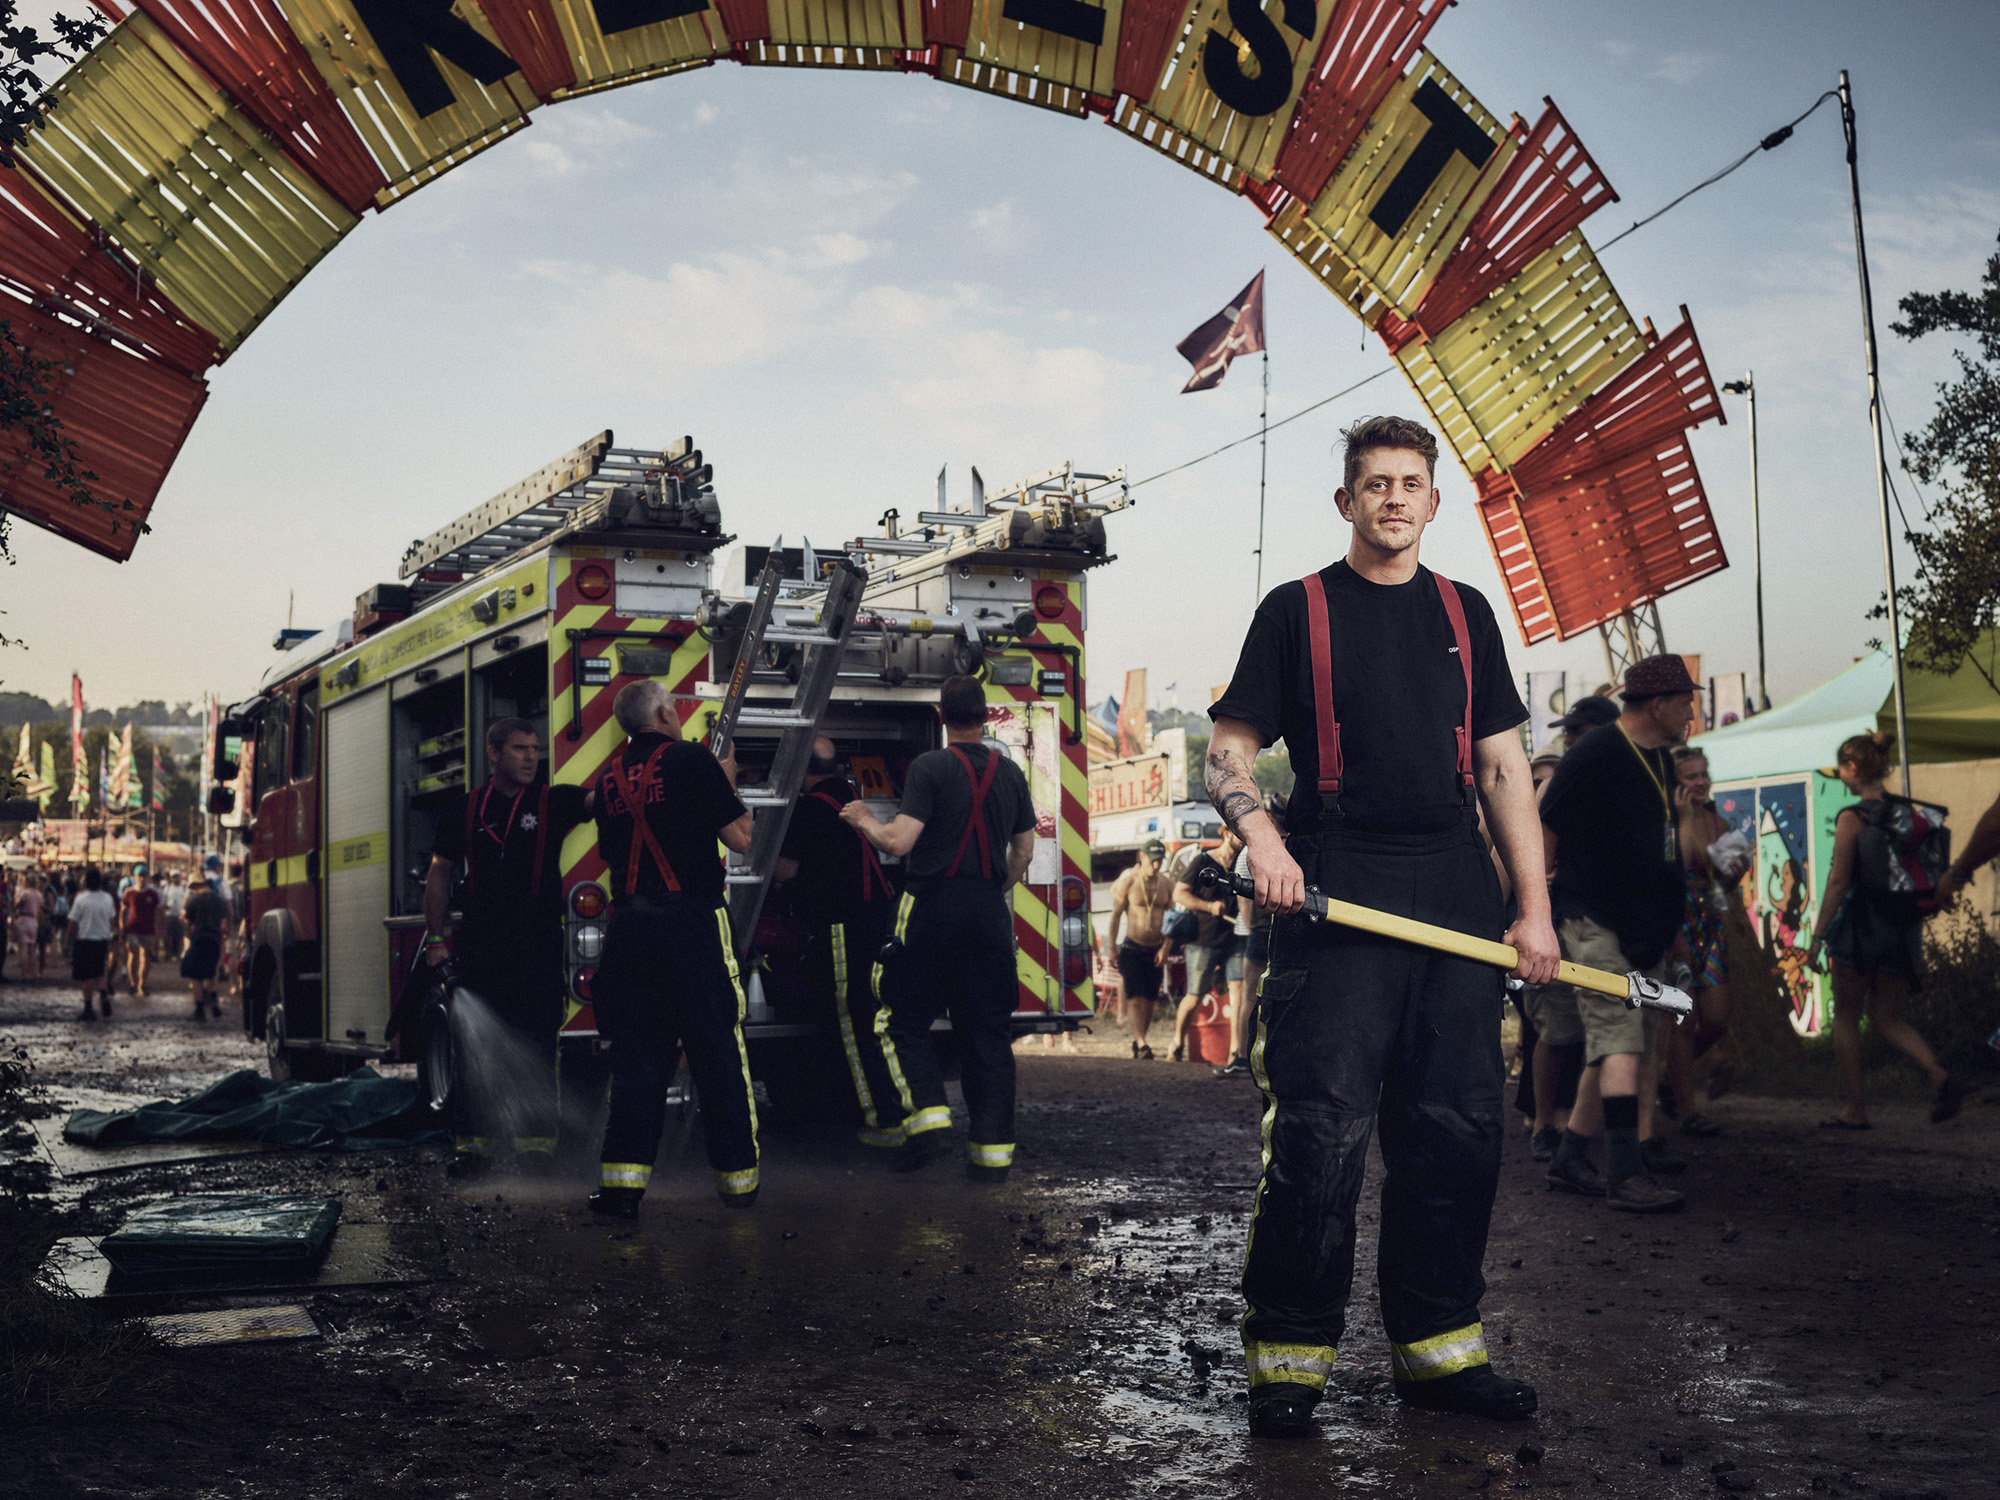 Matthew - Avon Fire and Rescue: Helping to cool down people on a very hot Wednesday